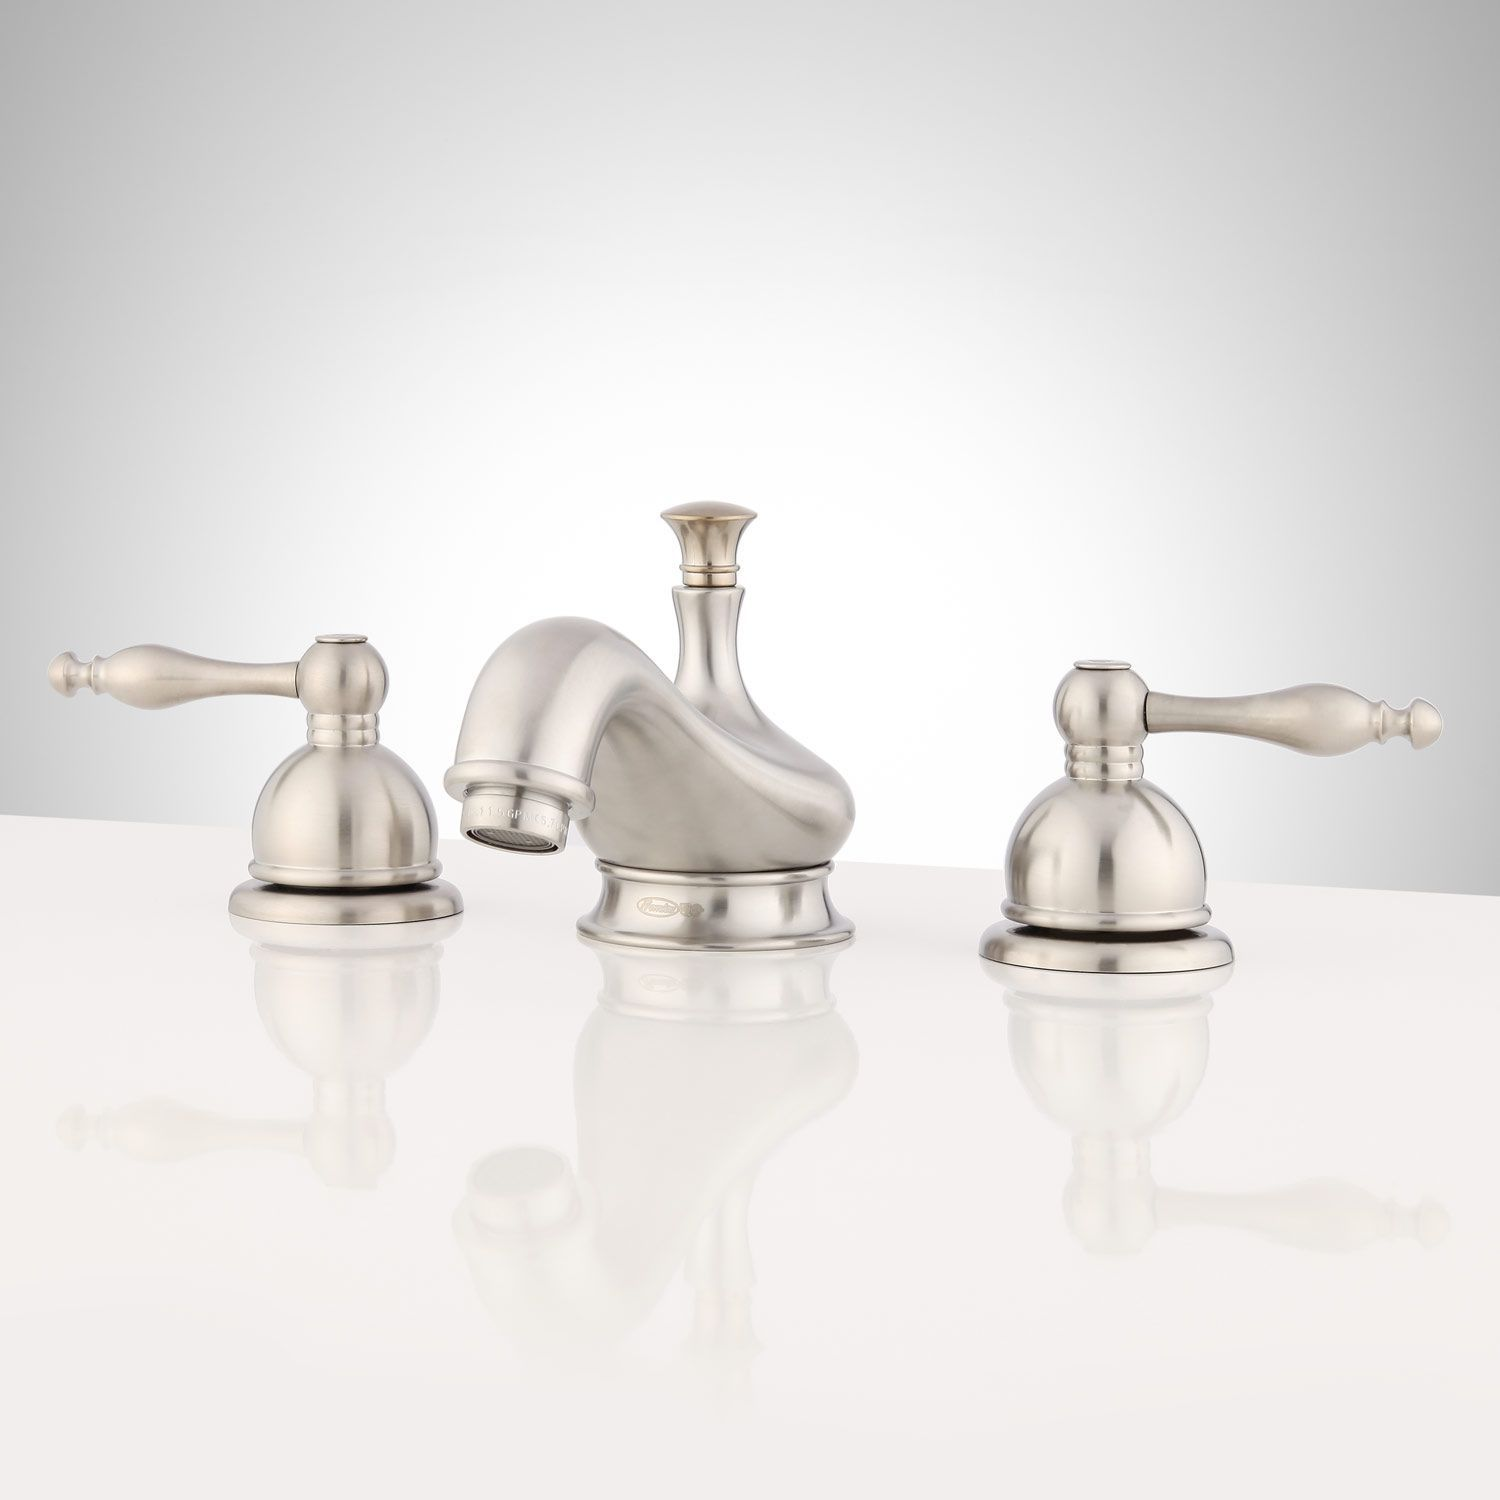 Wellington Widespread Bathroom Faucet  Brushed Nickel  Bathroom Amazing Brushed Nickel Bathroom Faucets Inspiration